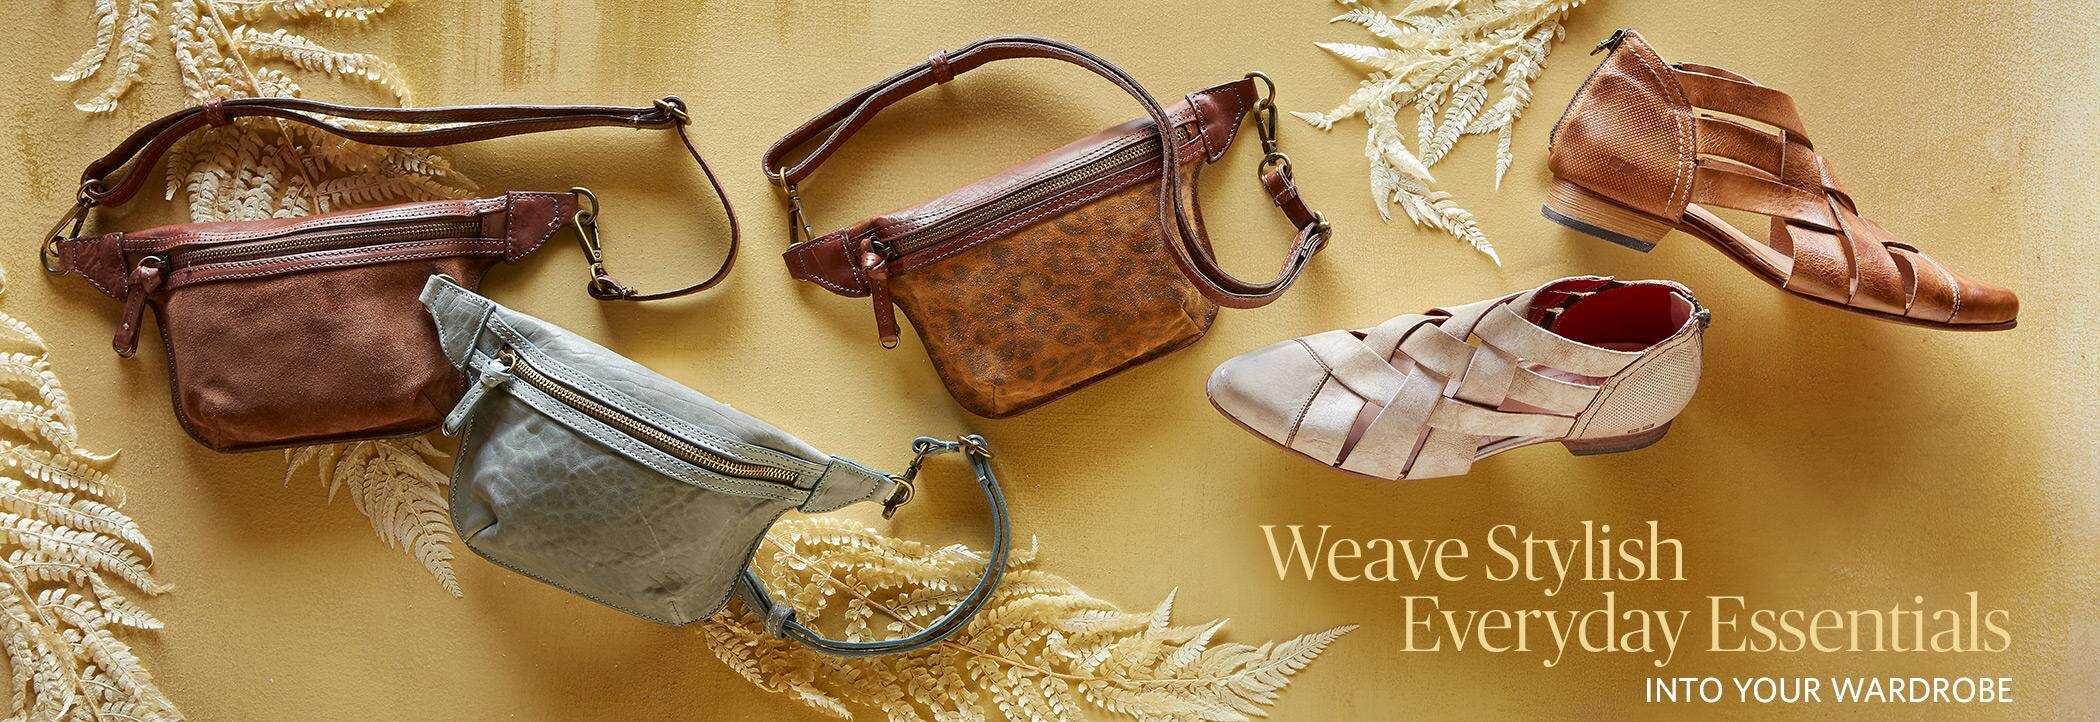 Weave Stylish Everyday Essential into your Wardrobe